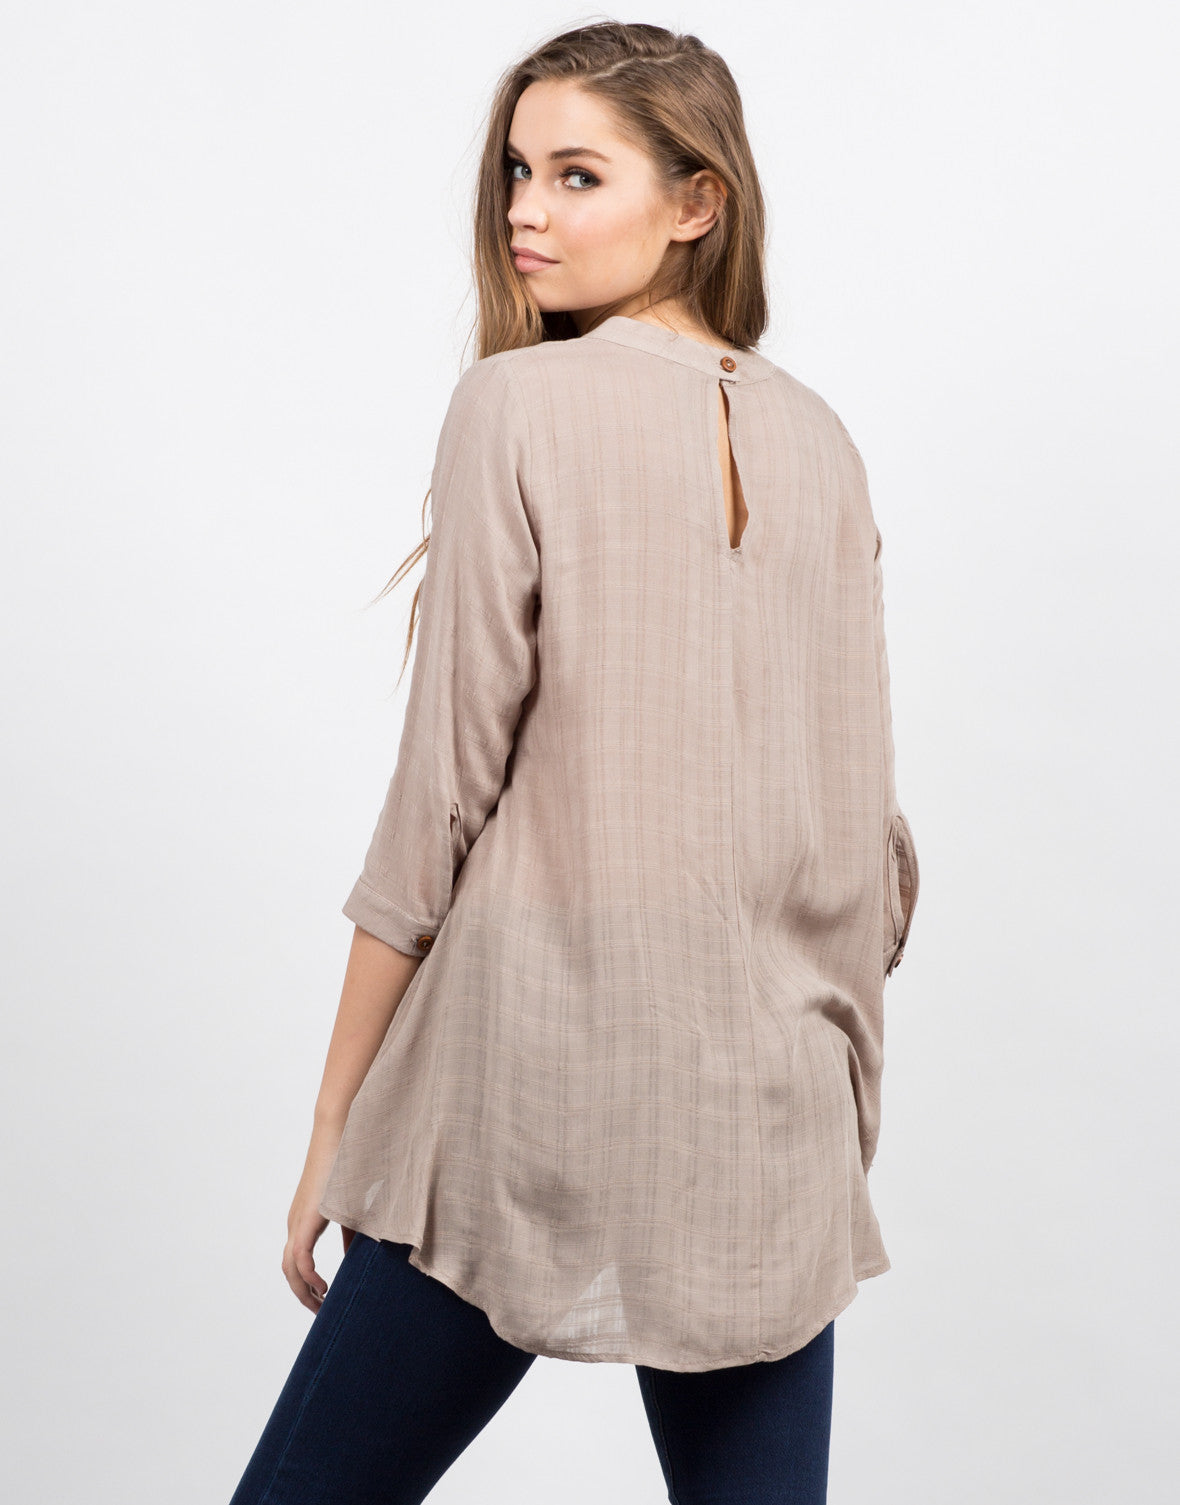 Back View of Woven Flowy Top